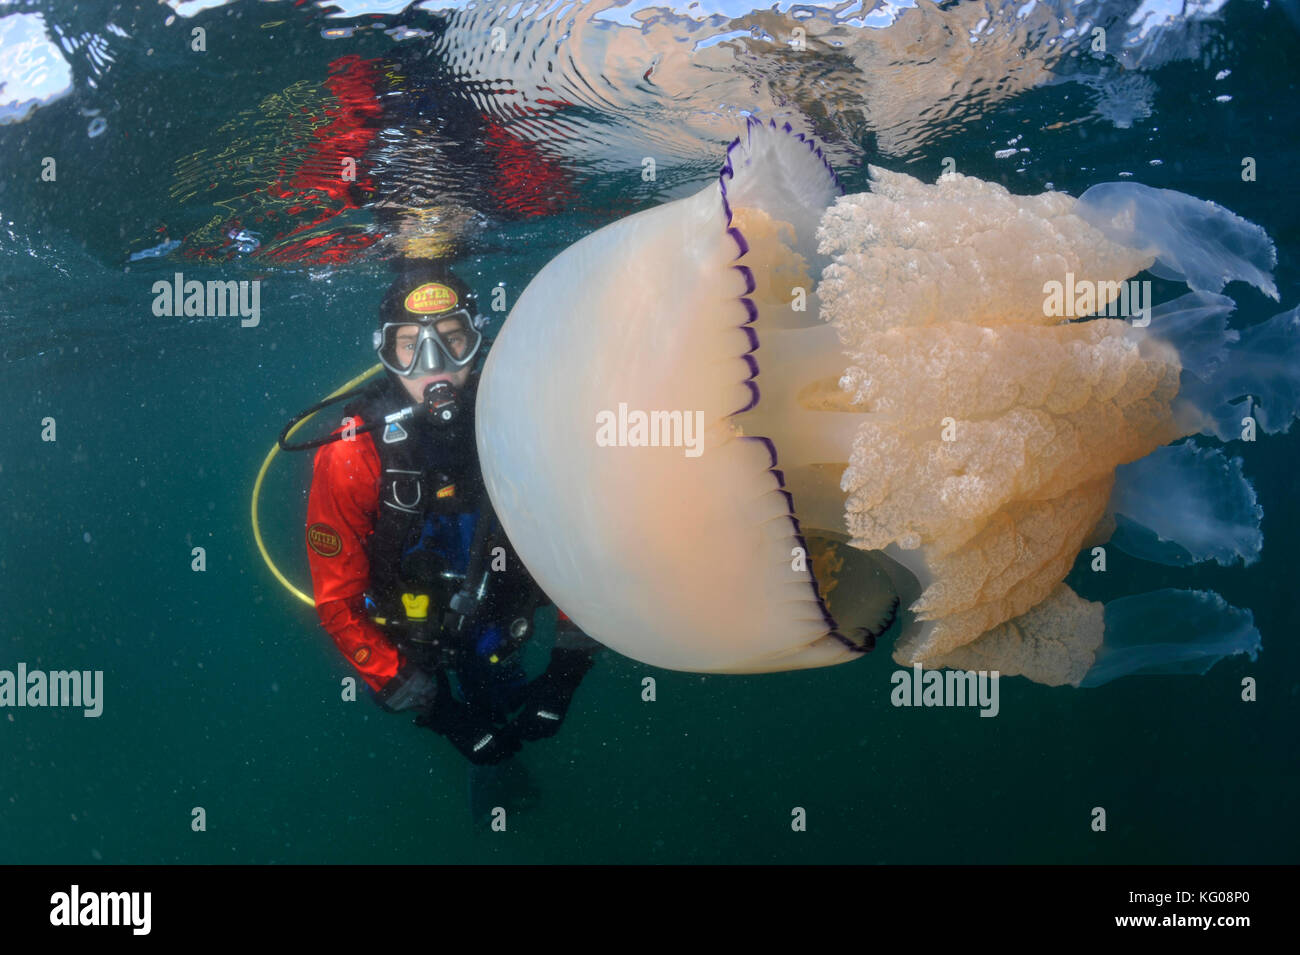 Diver with barrel jellyfish - Stock Image